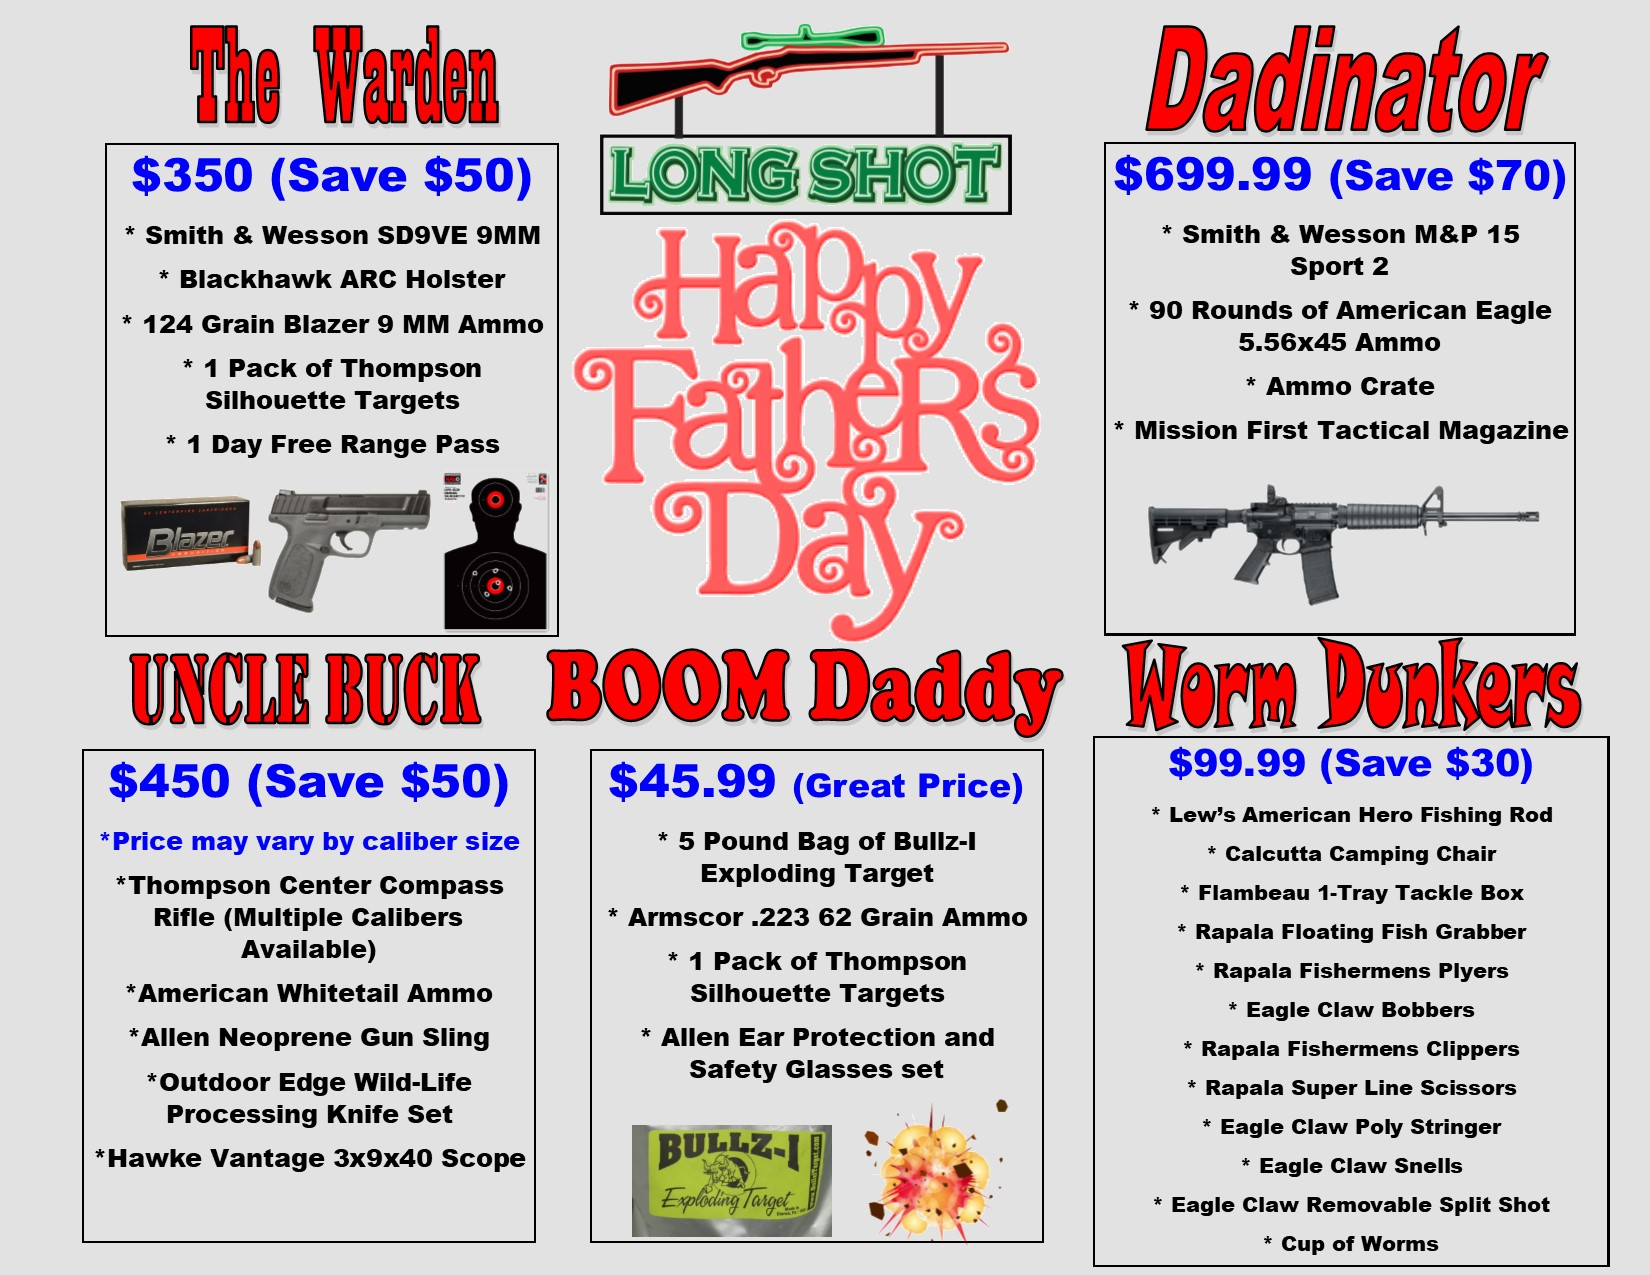 Fathers Day Special Packages